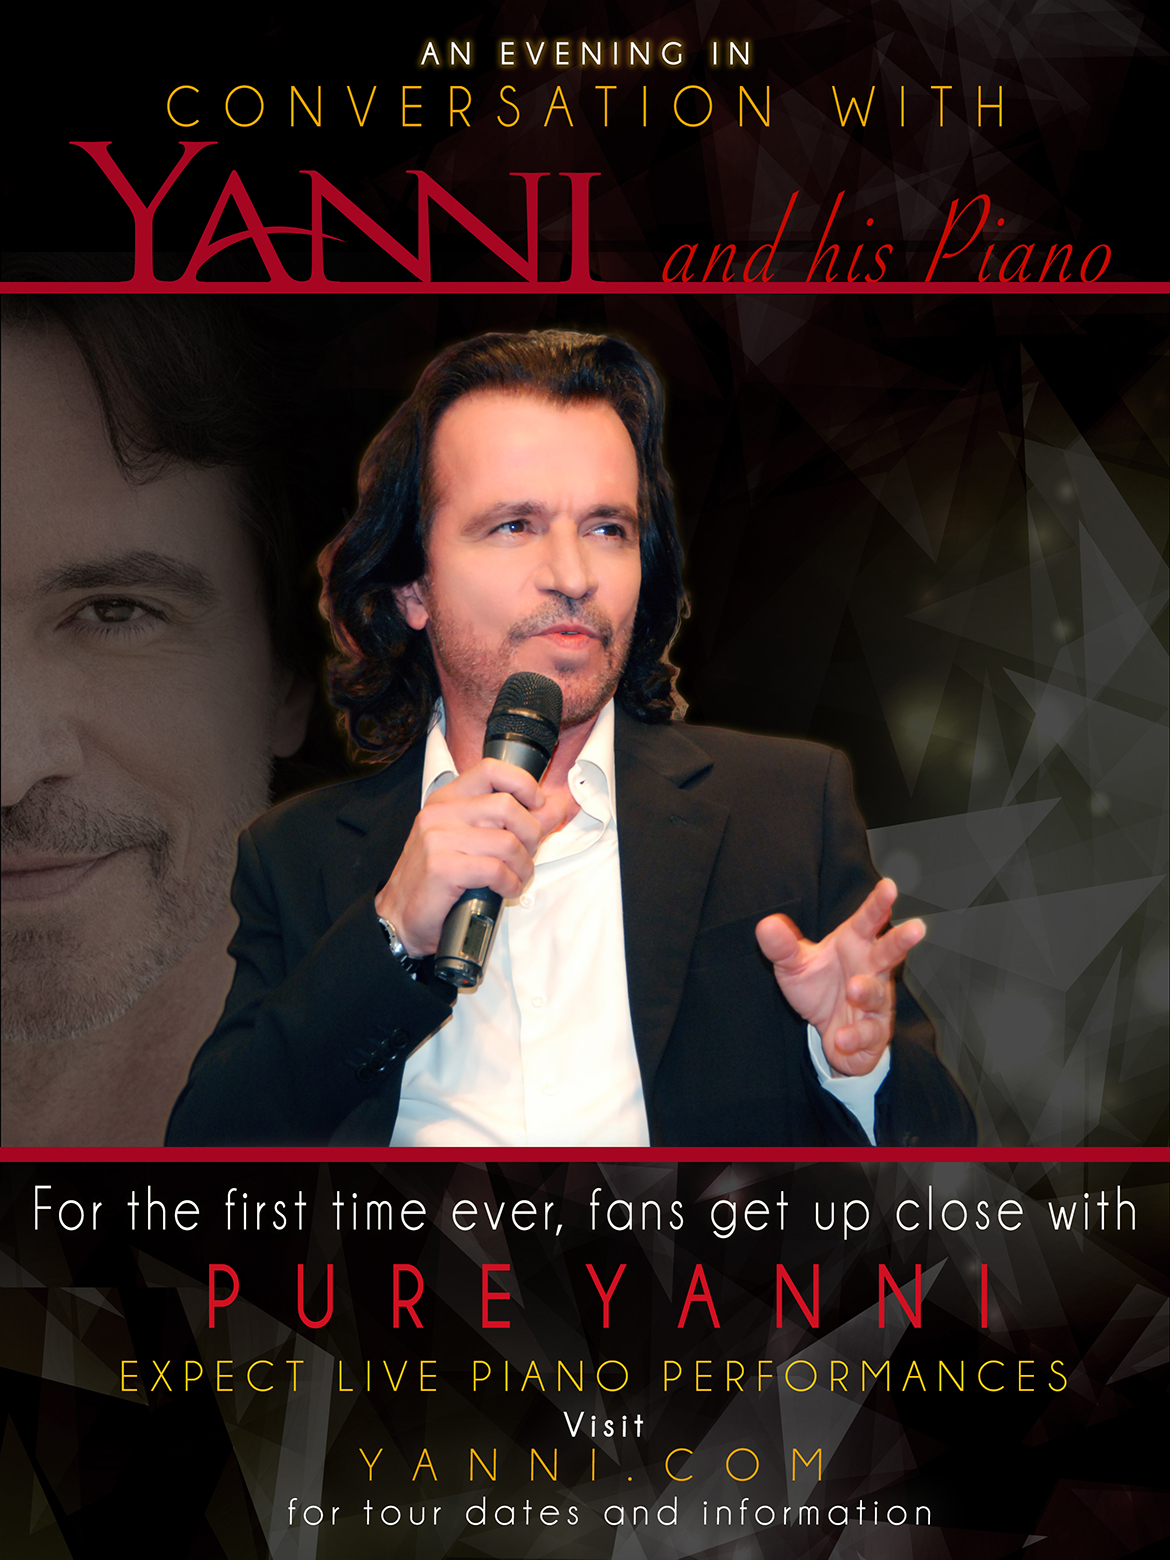 An Evening In Conversation With Yanni and his Piano